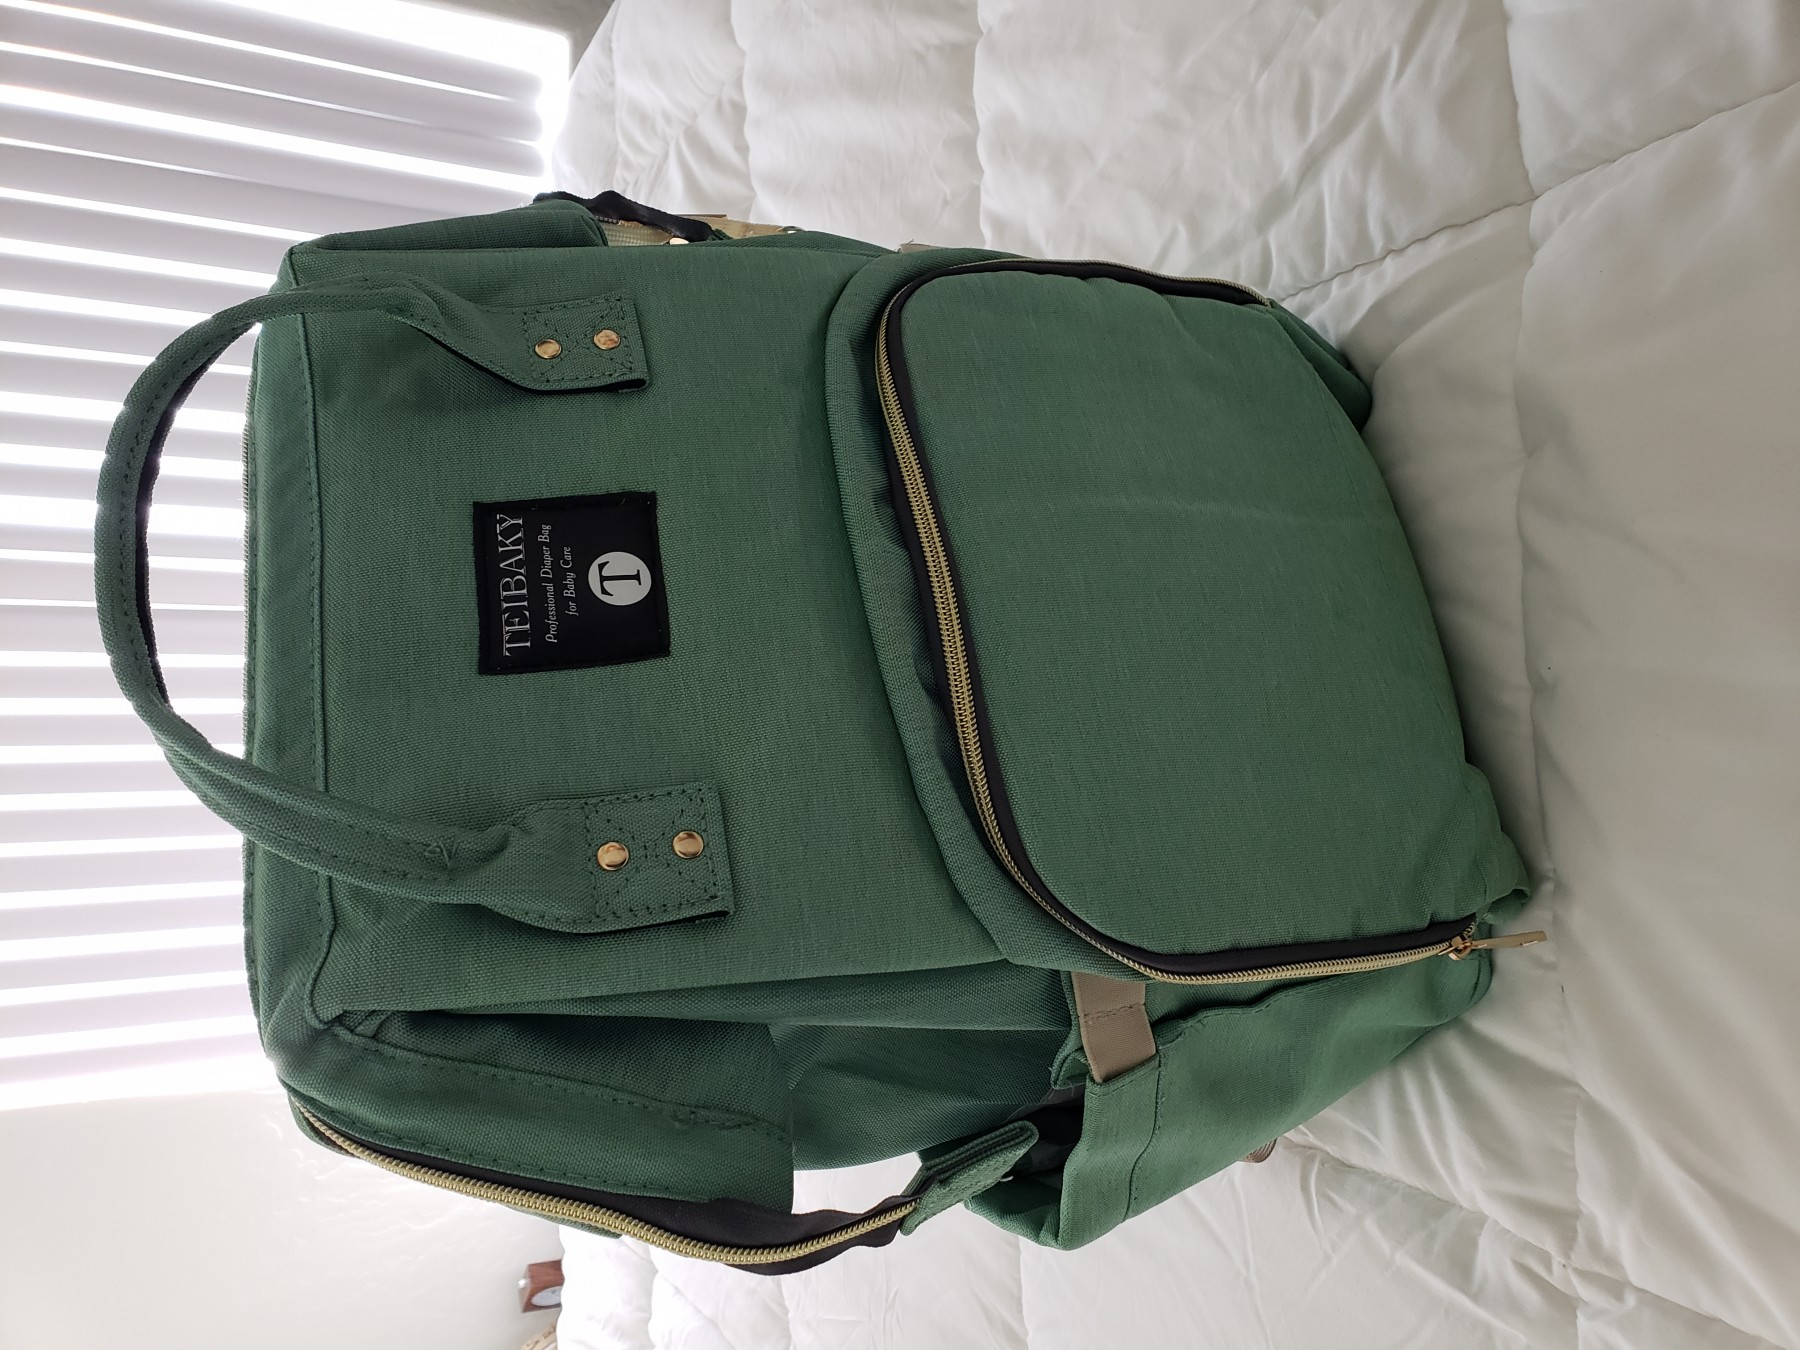 Worth the penny. Beautiful bag